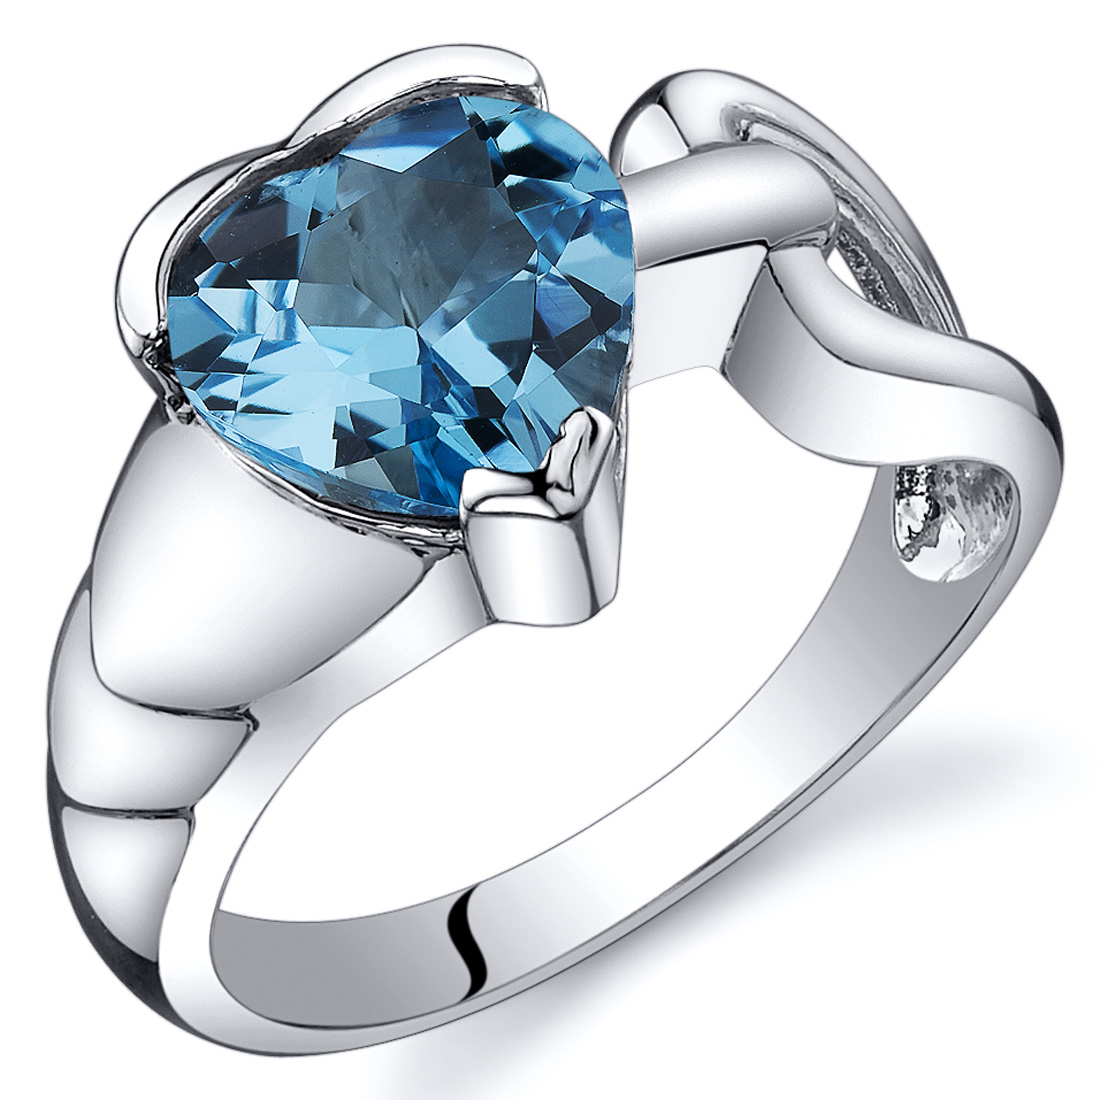 Peora 2.00 Ct Swiss Blue Topaz Engagement Ring in Rhodium-Plated Sterling Silver